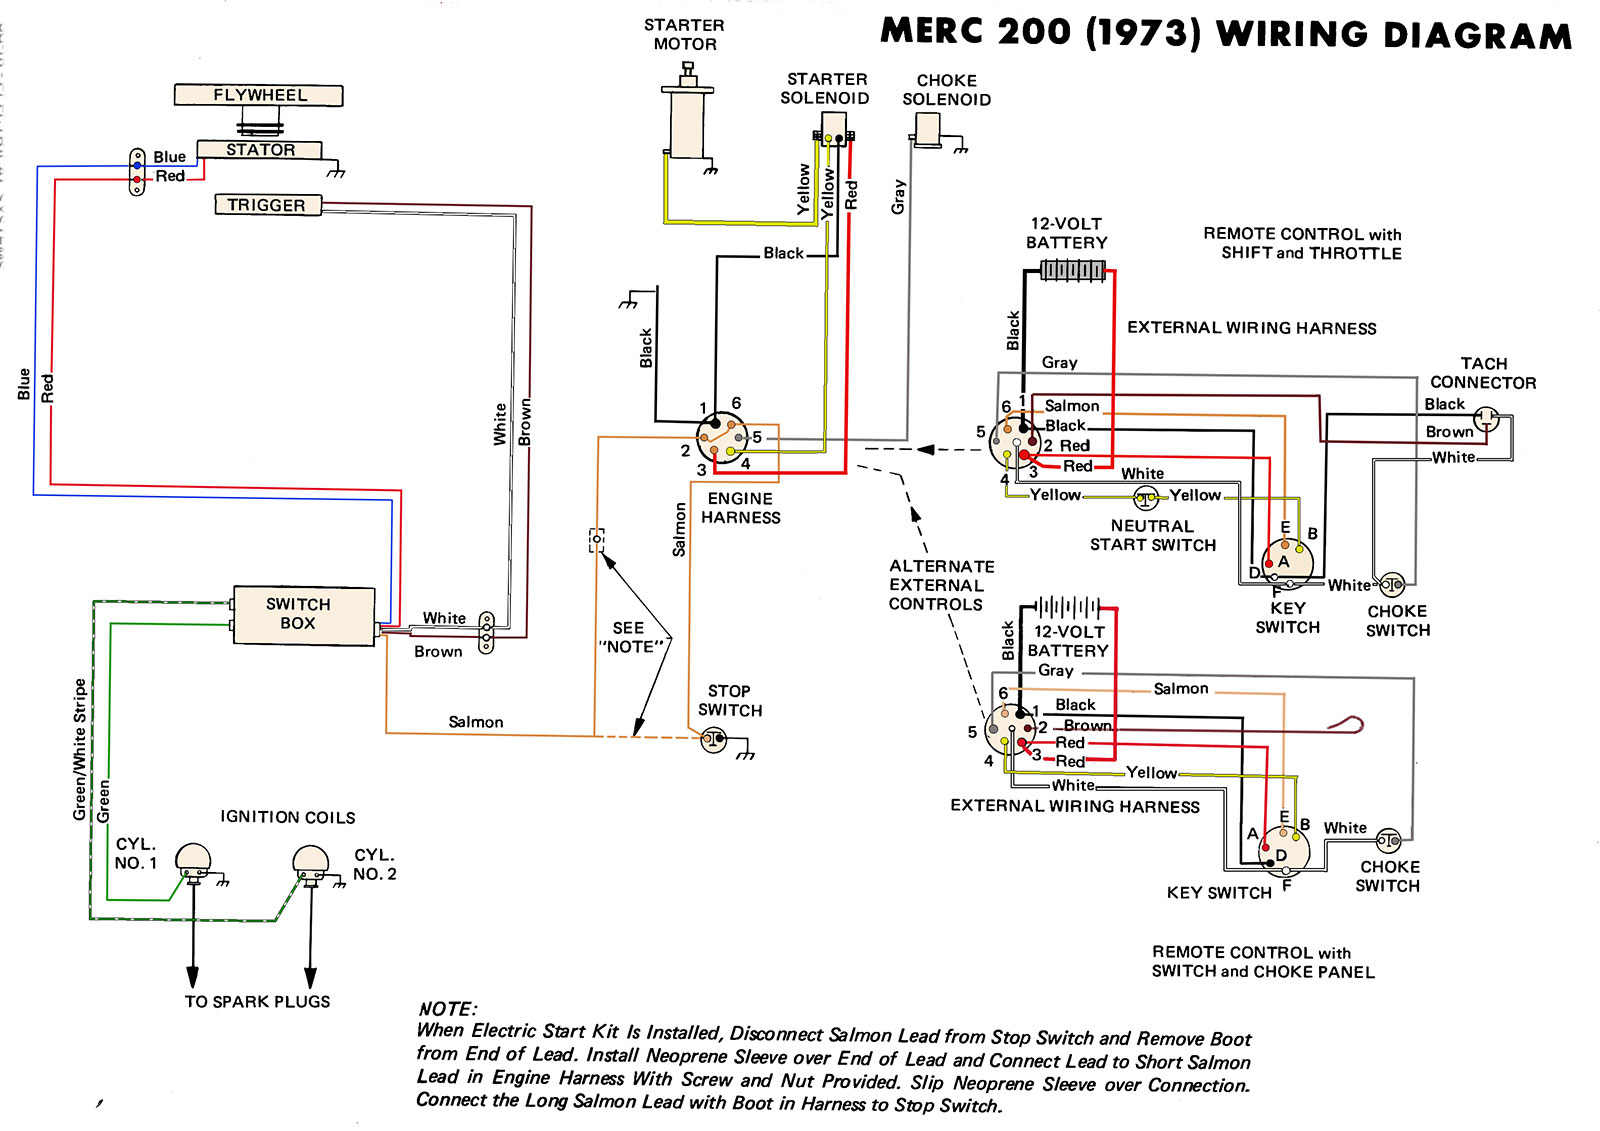 1973 Mercury Outboard Wiring Diagram - Wiring Diagrams Schematic on 2000 mercury 50 hp wiring diagram, 2006 mercury 50 hp oil filter, 1999 mercury 50 hp wiring diagram,